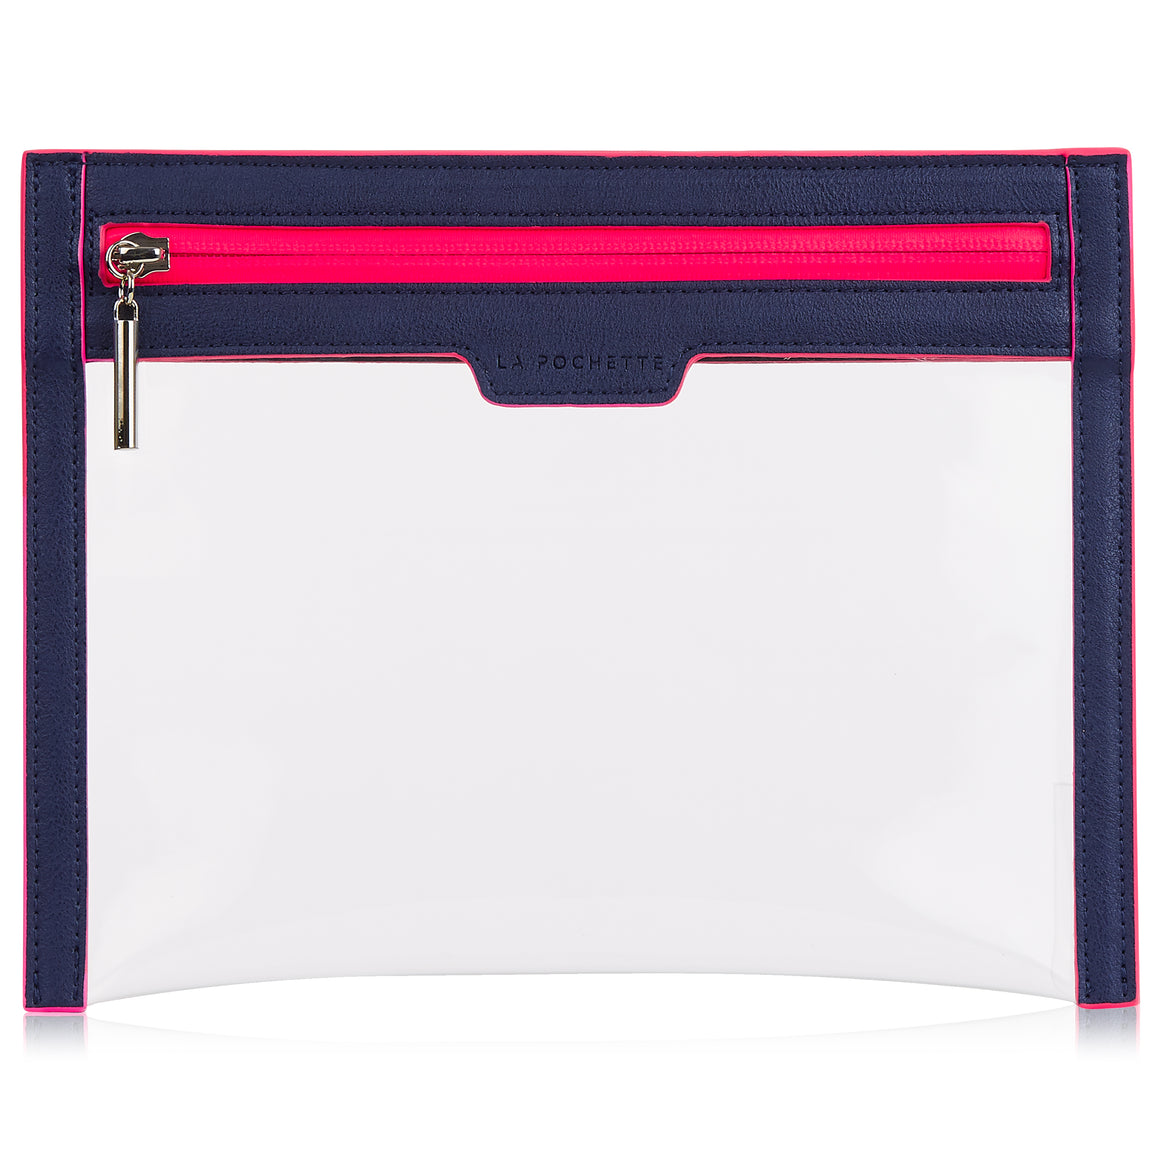 Anywhere Everywhere Wallet - Midnight Neon Pink